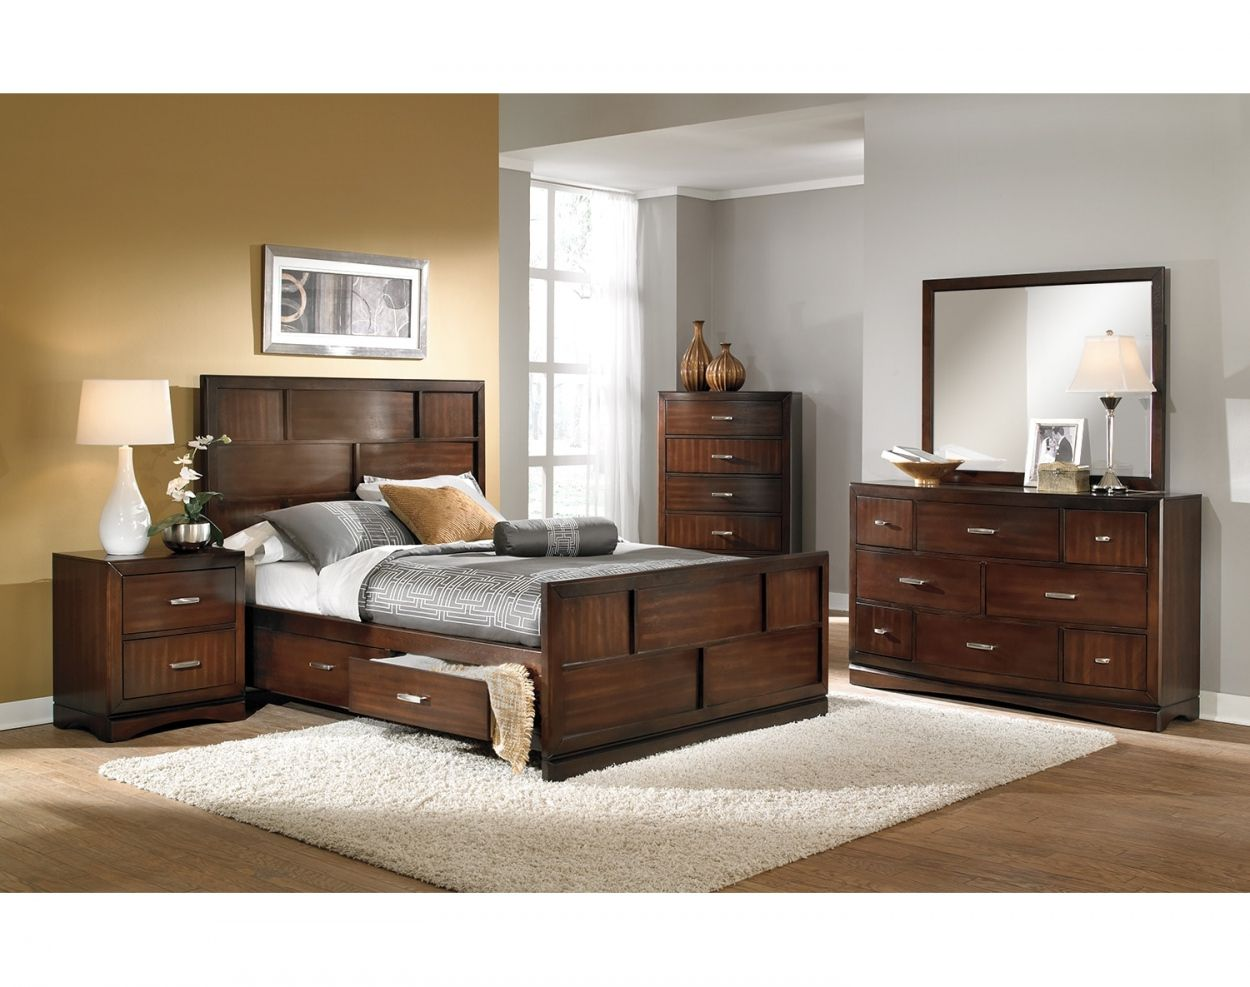 Sleep City Bedroom Furniture - Best Way to Paint Wood Furniture ...